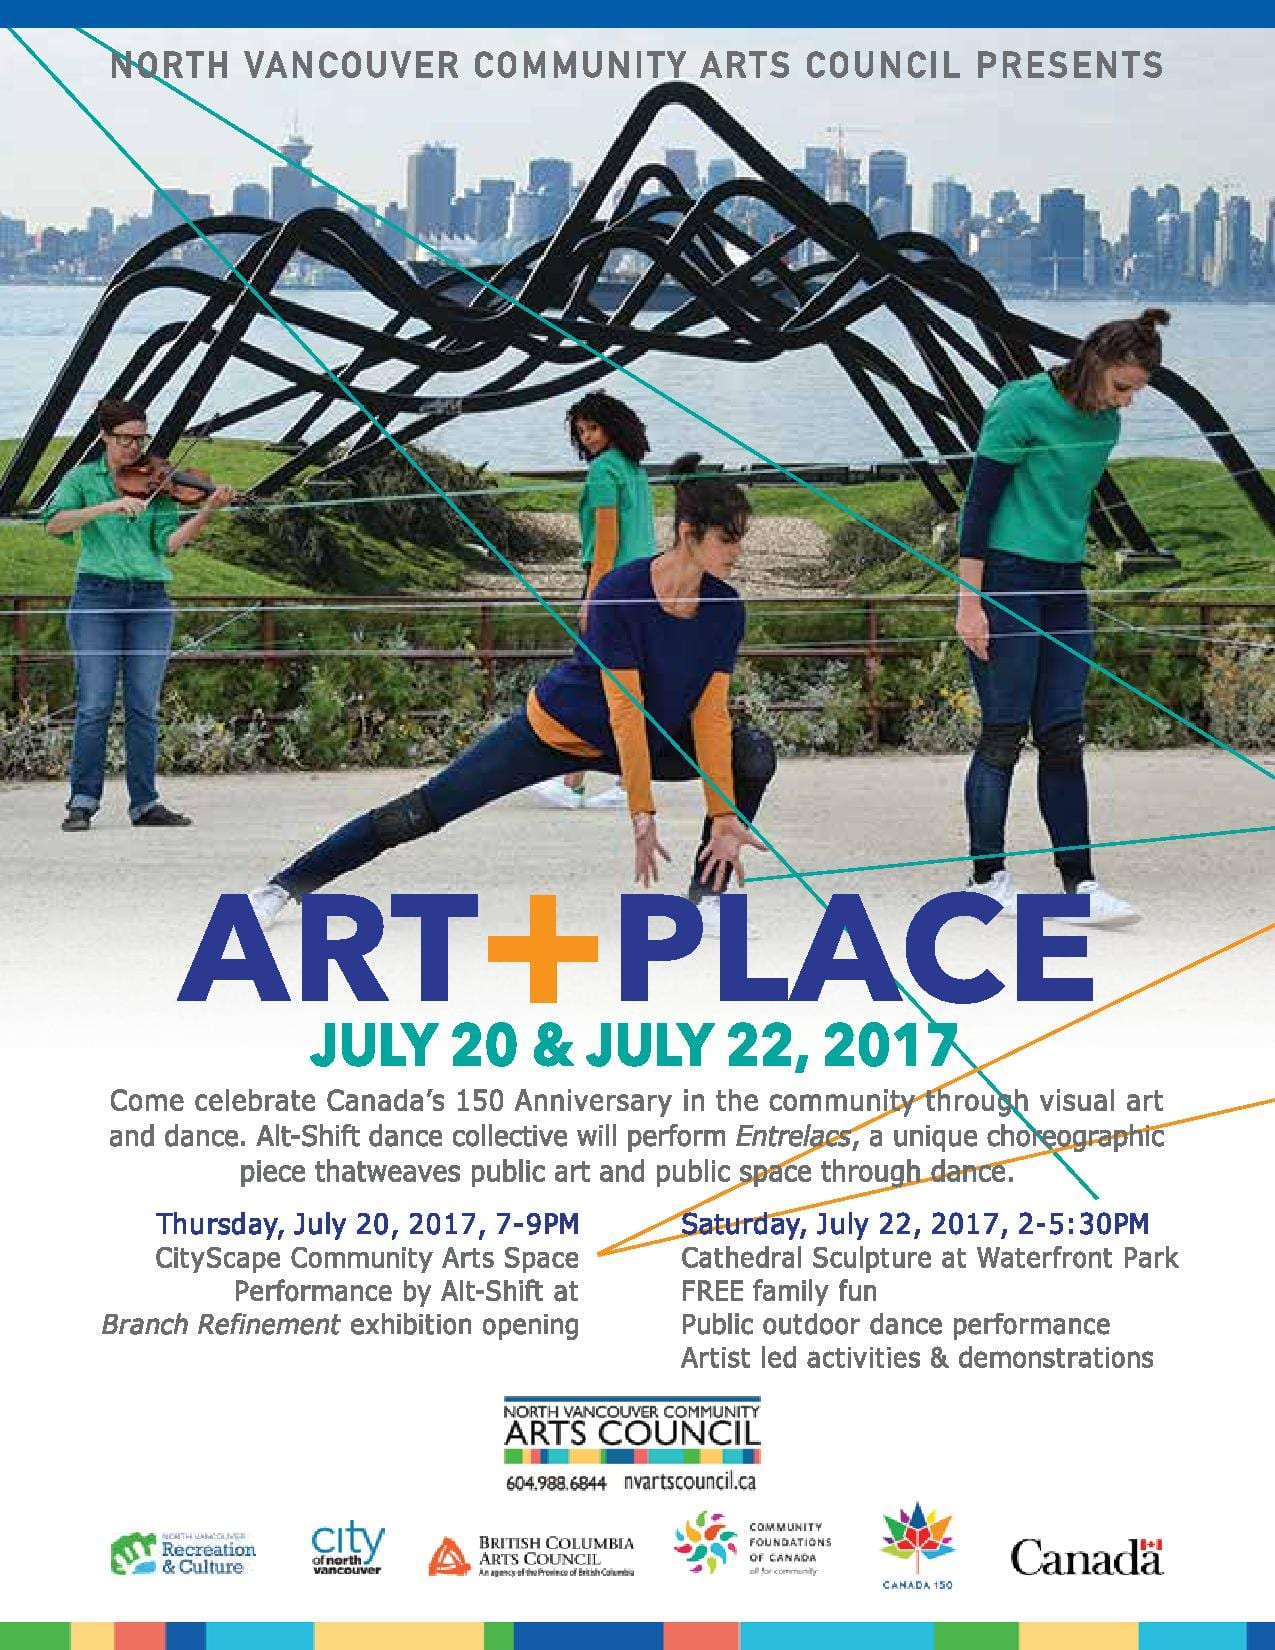 ART+PLACE a Dance Performance at the Waterfront Park North Vancouver